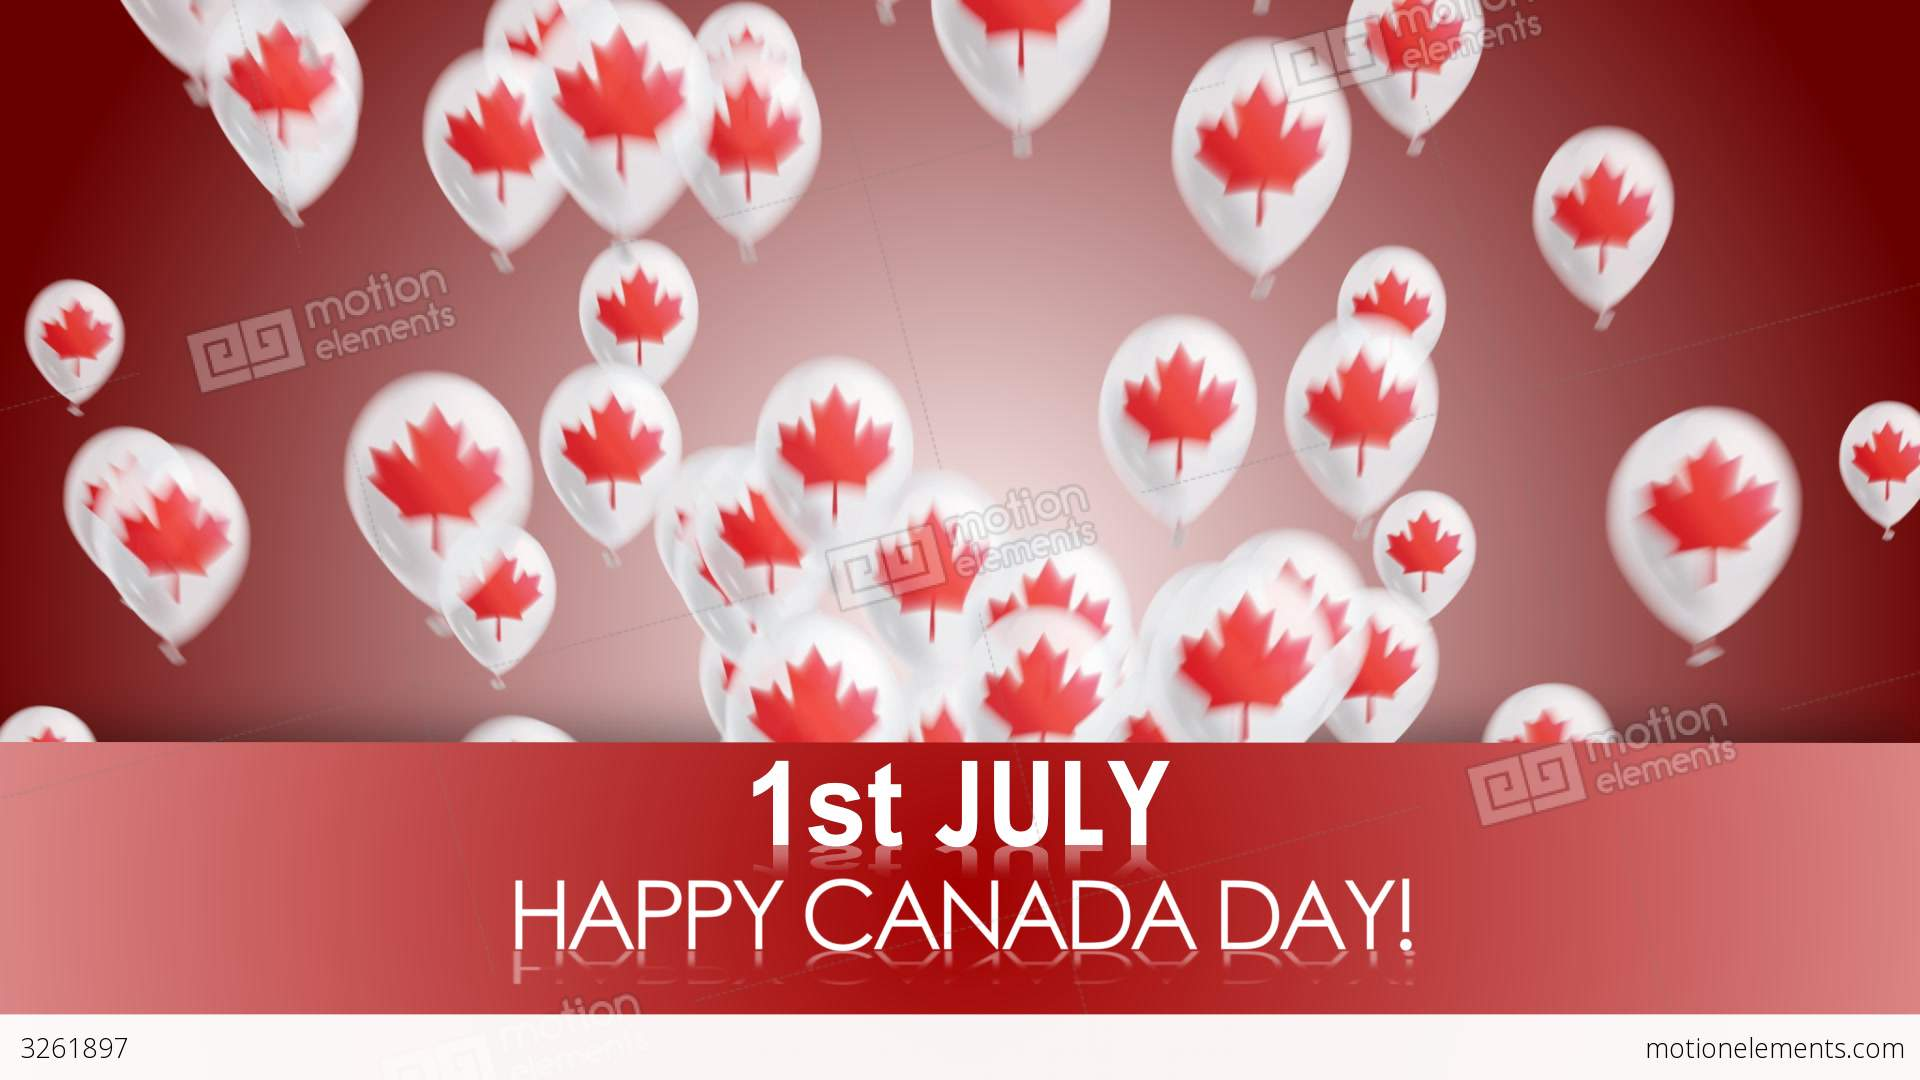 60 canada day celebration and wishes pictures and ideas 1st july happy canada day wishes greeting m4hsunfo